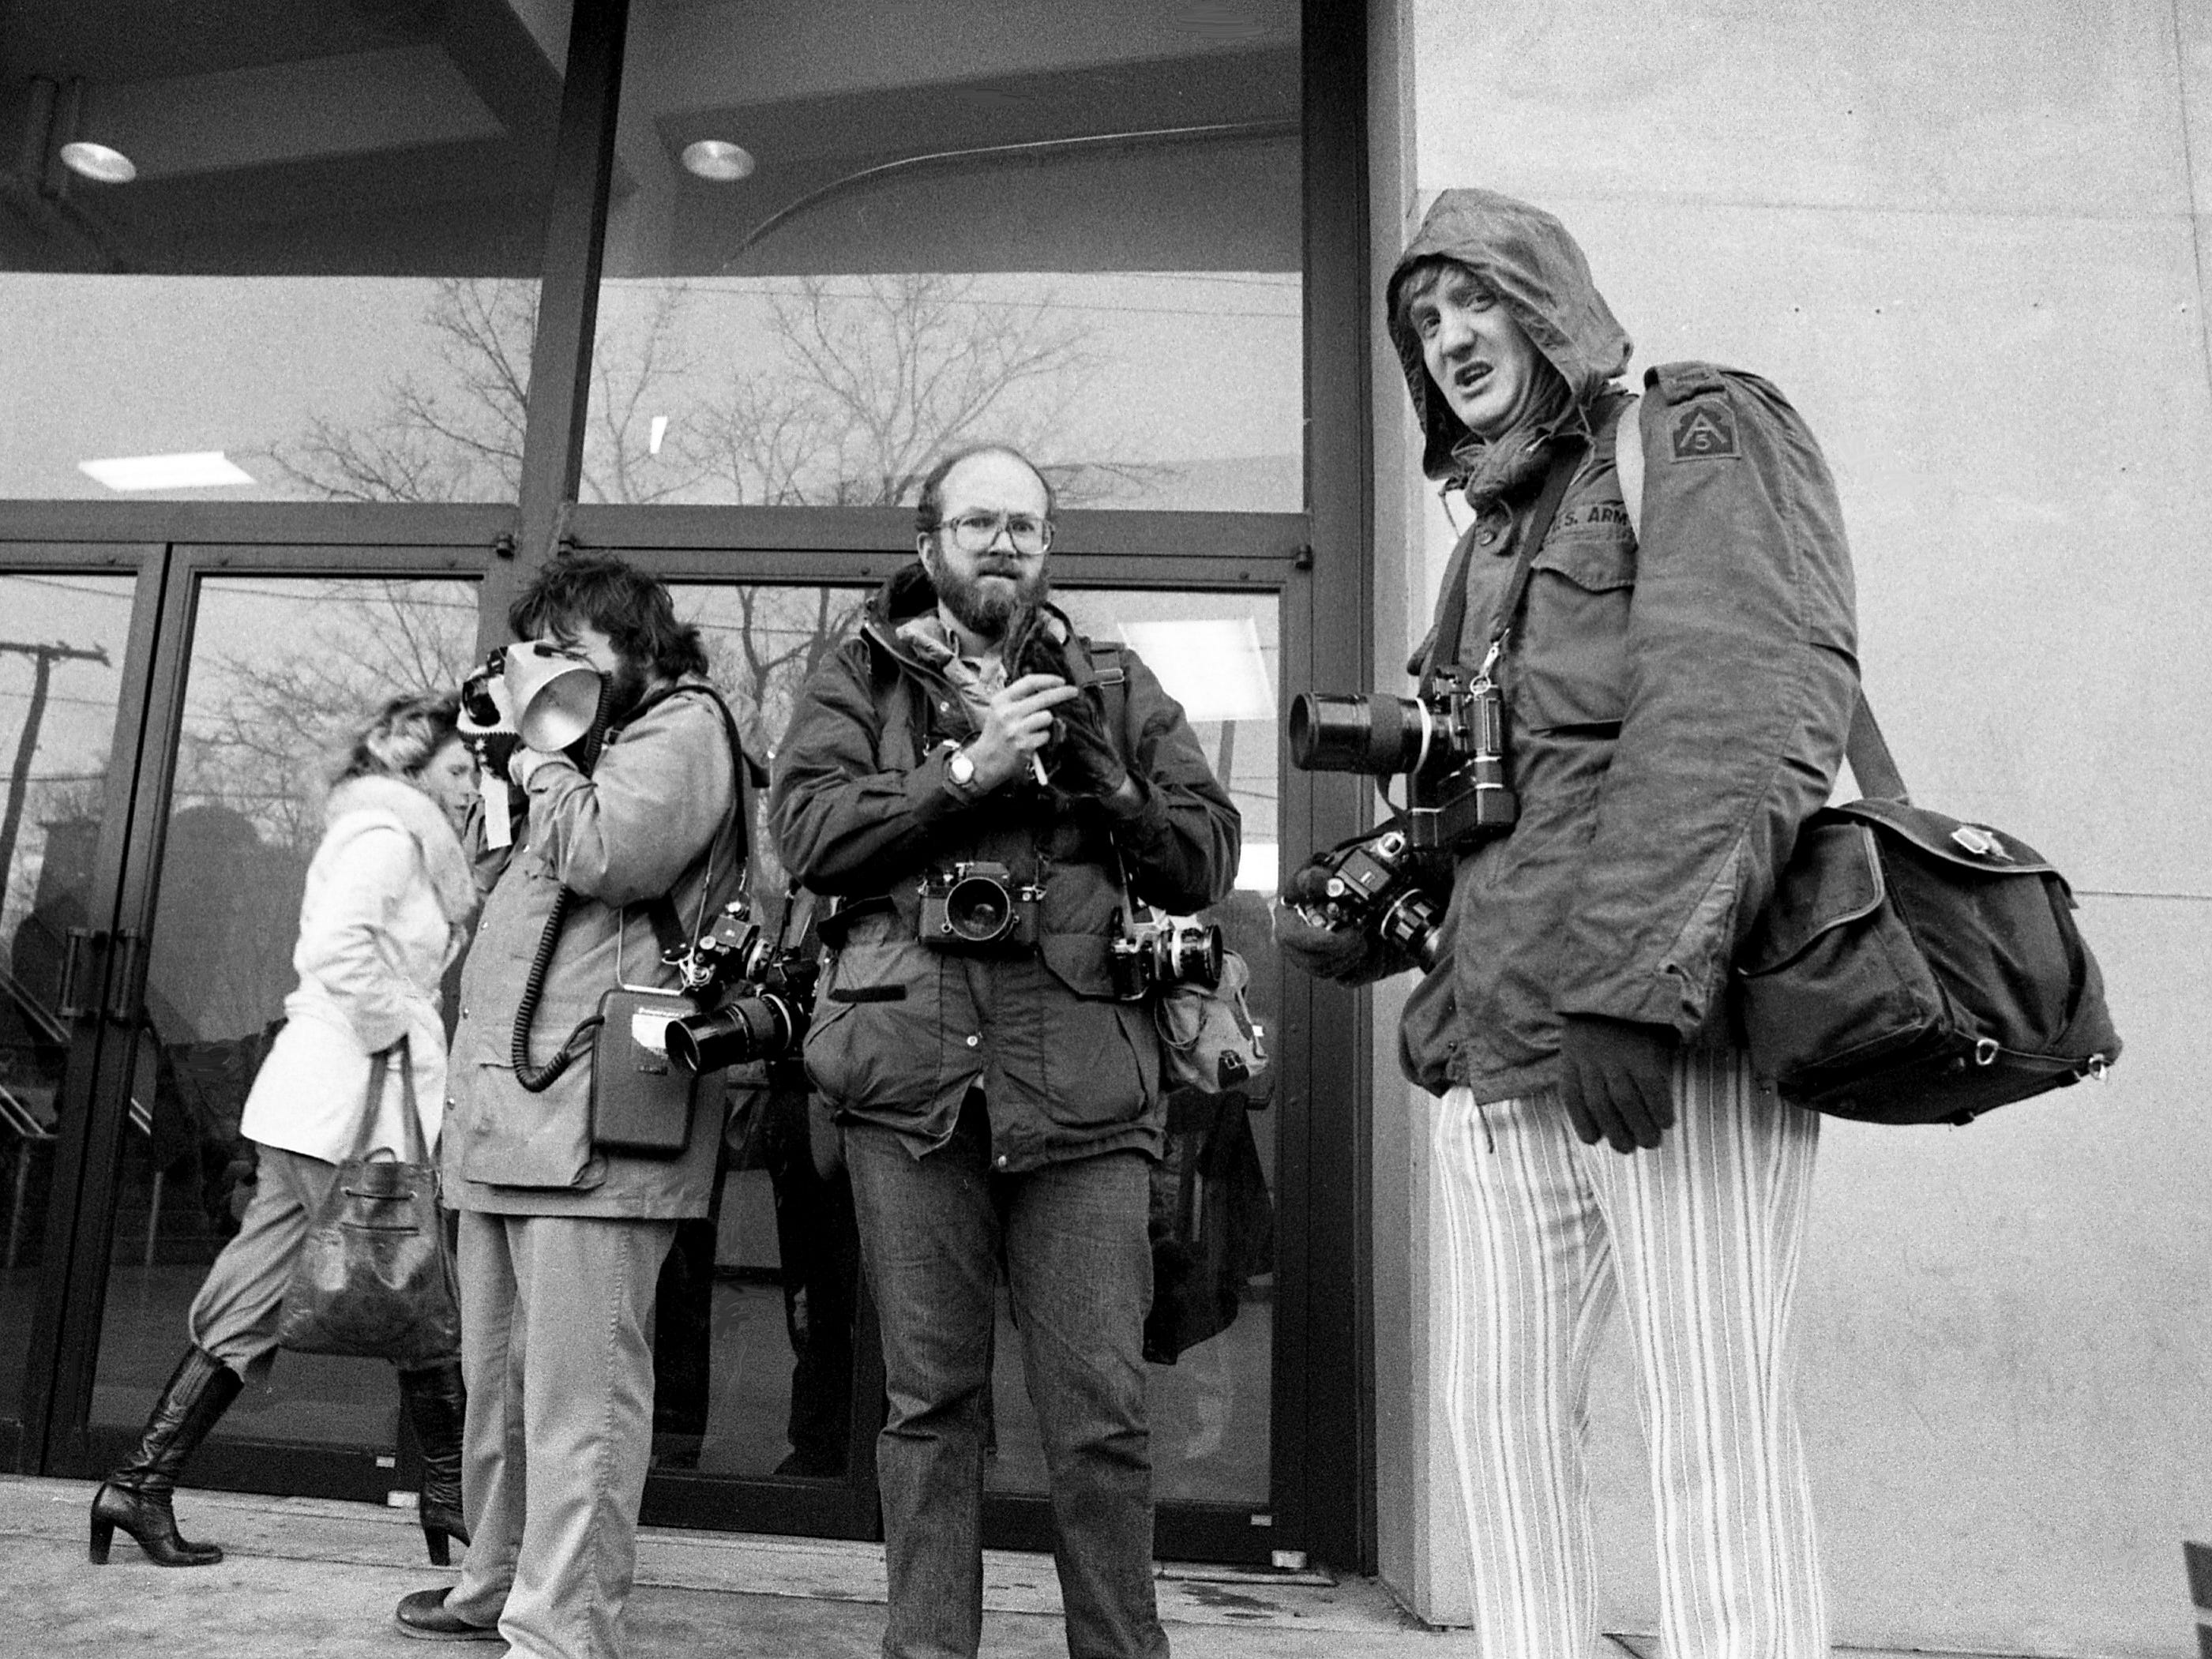 Tennessean photographers Bill Welch, center, and Dan Loftin, right, watch protesters of the Davis Cup match between the U.S. and South Africa at Vanderbilt University's Memorial Gym on March 17, 1978.